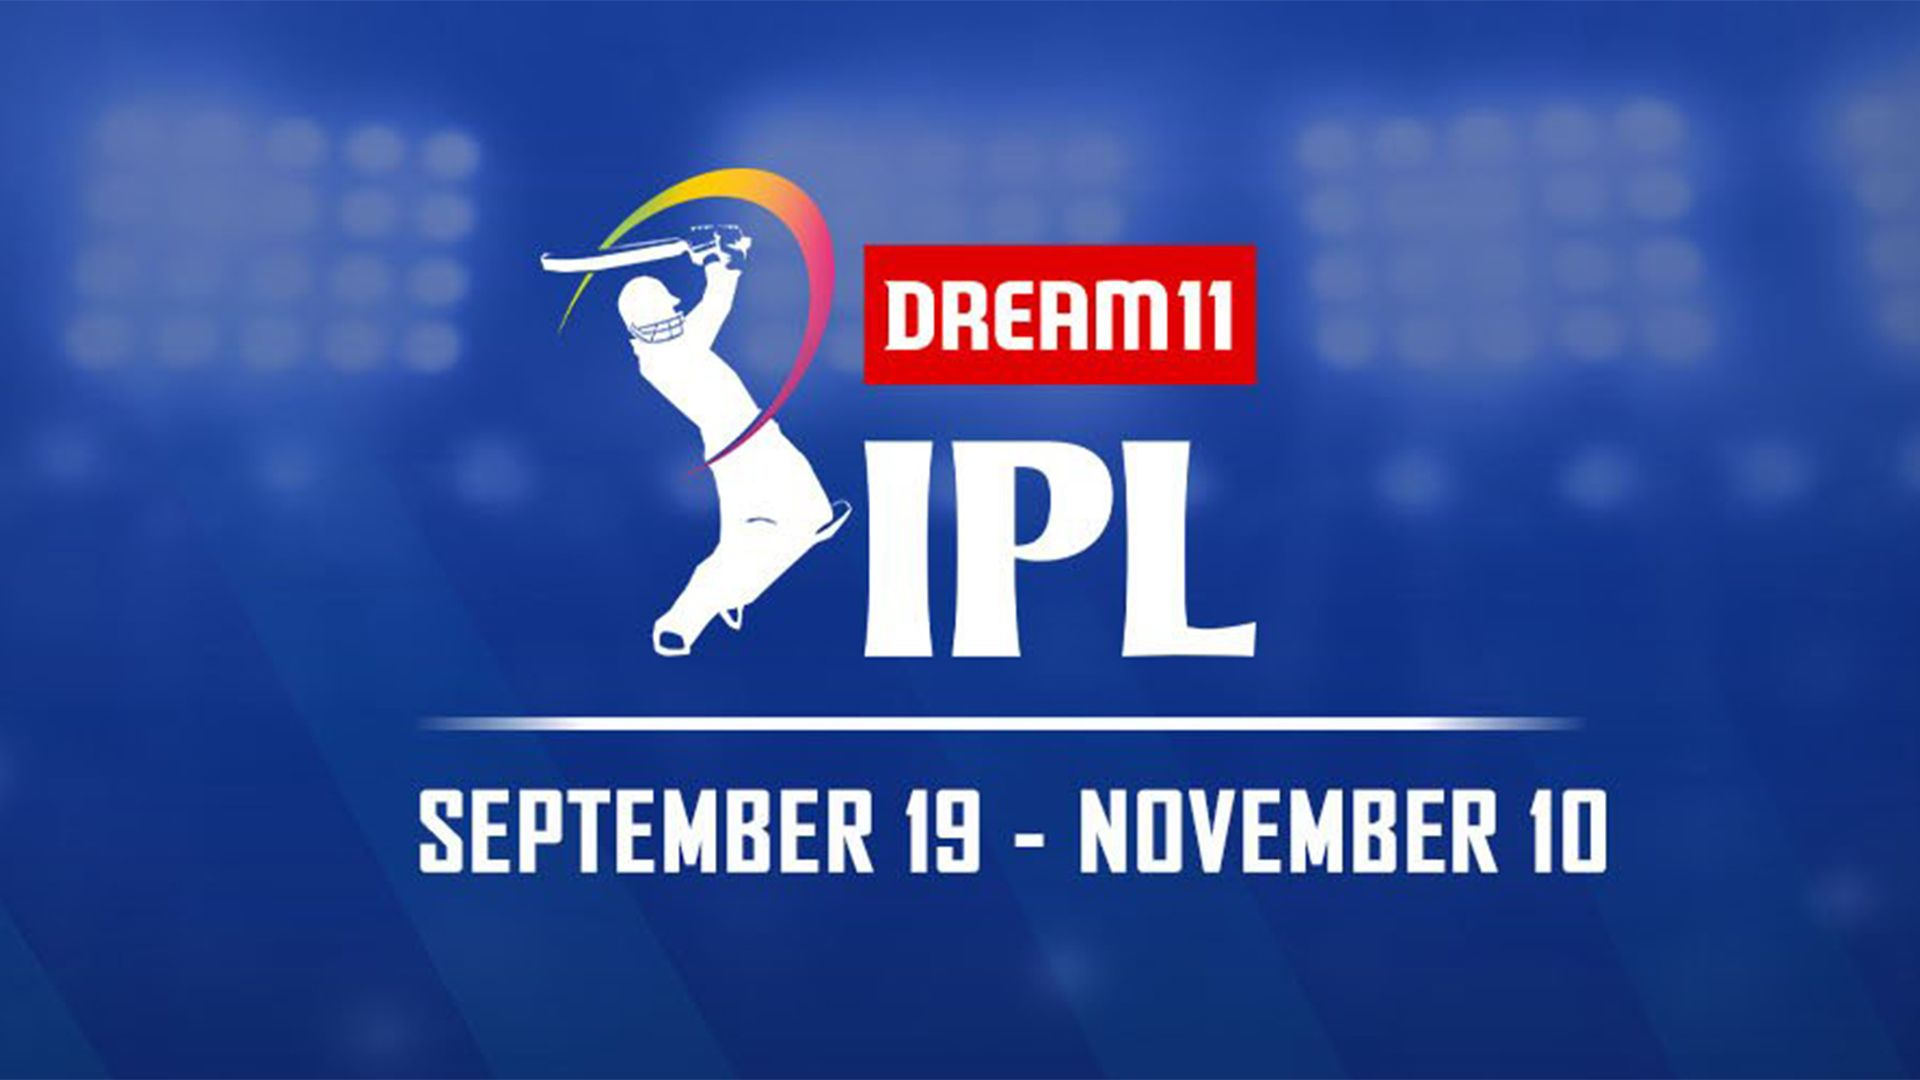 How To Watch Ipl 2020 Matches Live On Your Smart Tv Smartphone And Laptop May Lam đa Vien Hải Au Hải Au Group Cung Cấp May Lam đa Vien Sạch